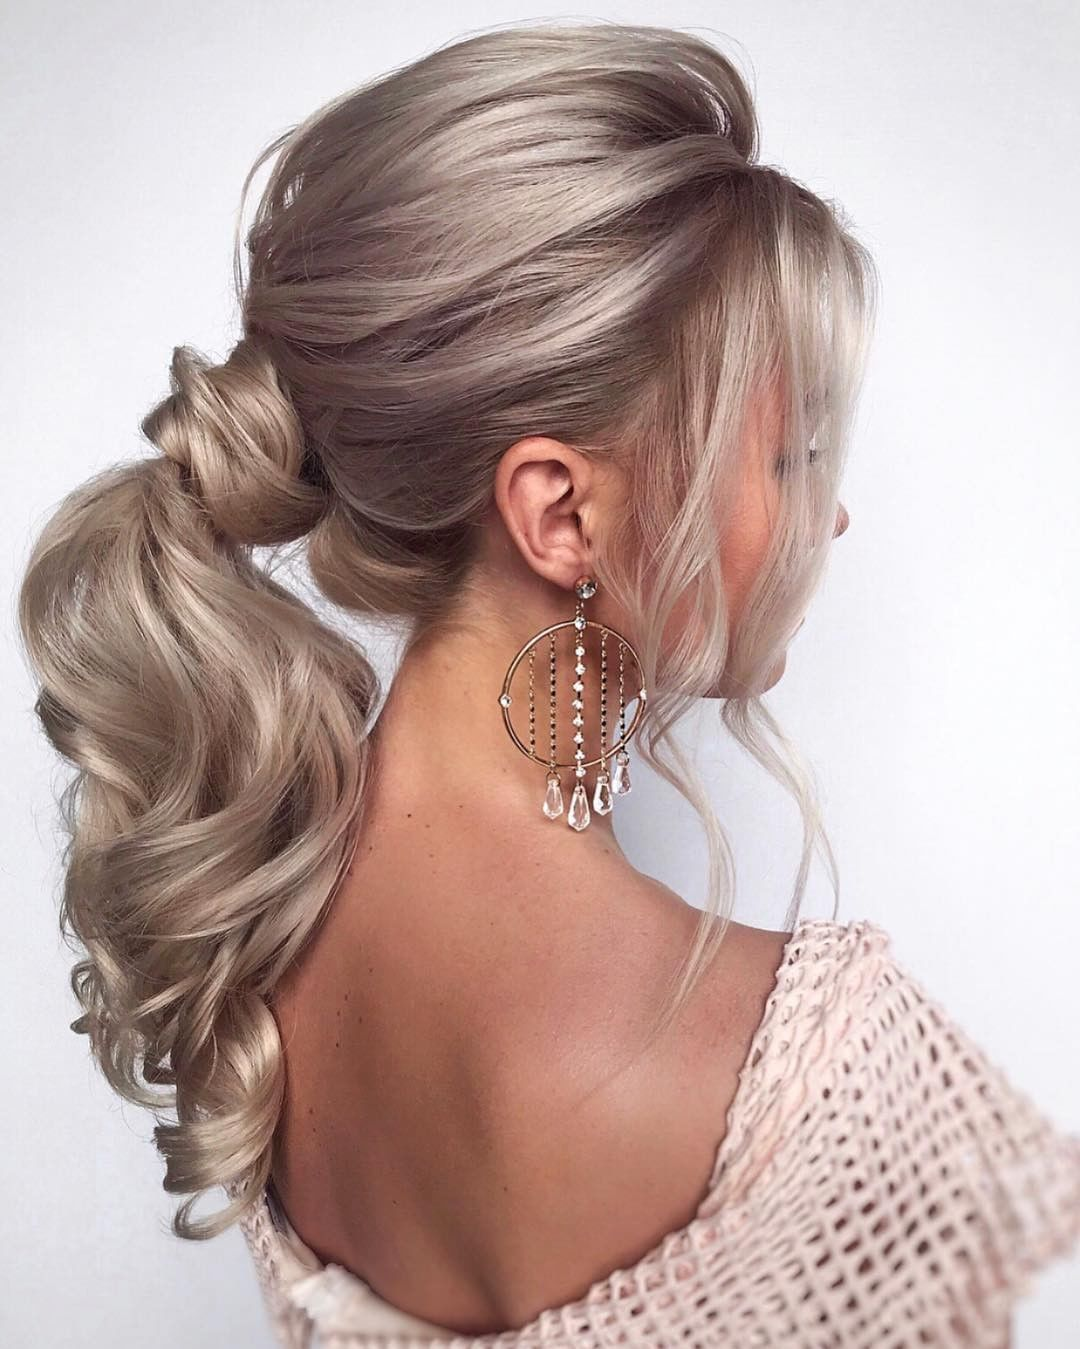 Paloma Blanca On Instagram Do You Like This Wedding Hairstyle Idea Double Tap If You Do Ha In 2020 Long Hair Styles Hair Styles Elegant Ponytail